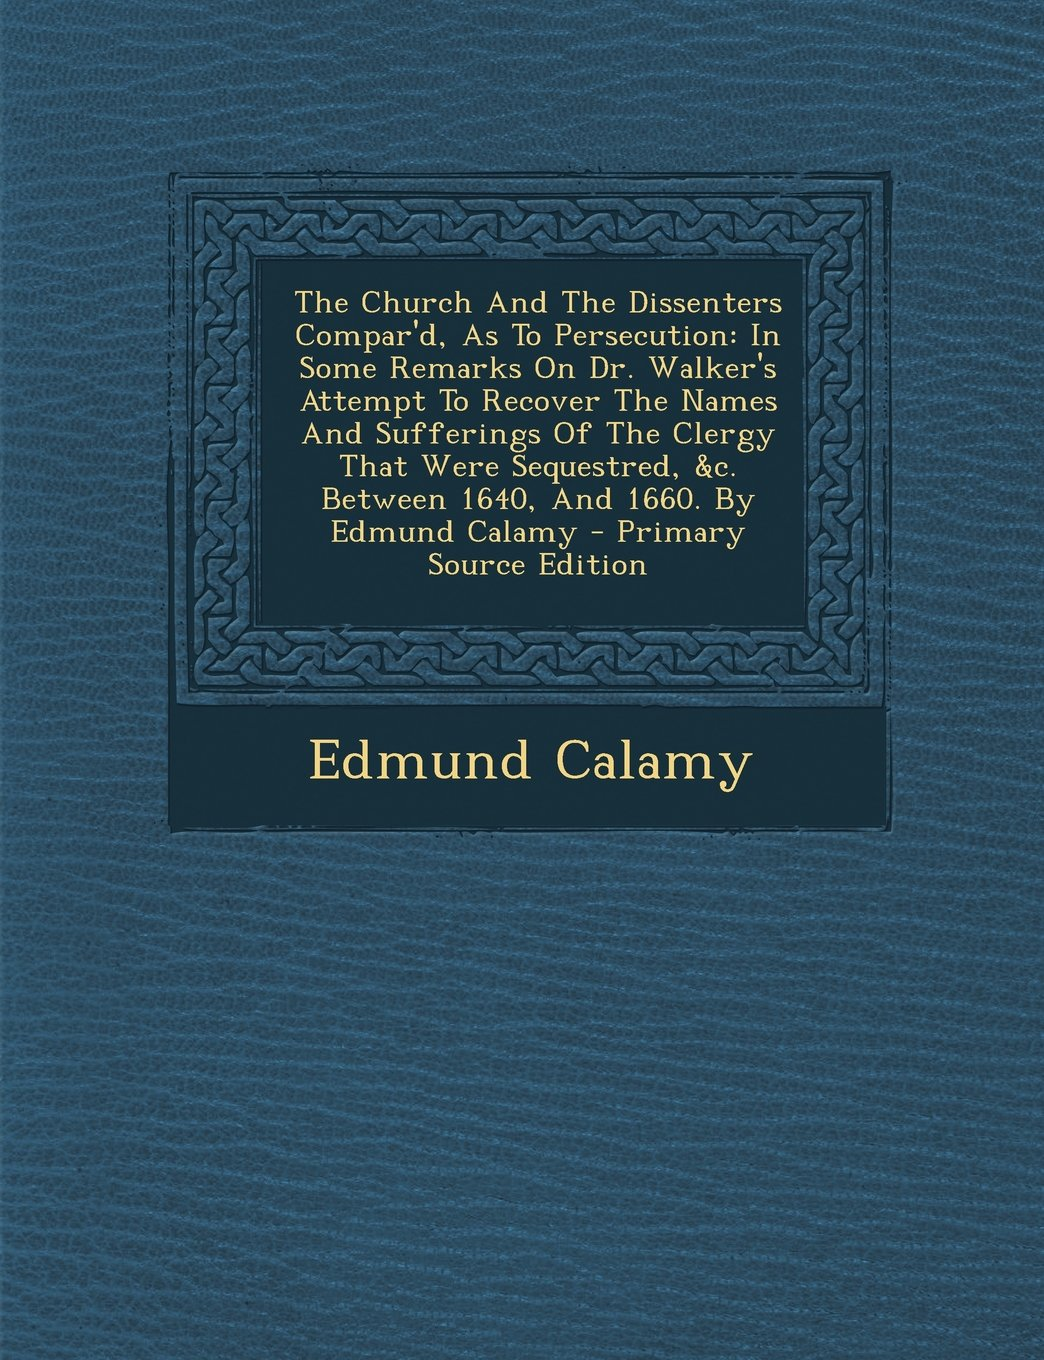 Download The Church And The Dissenters Compar'd, As To Persecution: In Some Remarks On Dr. Walker's Attempt To Recover The Names And Sufferings Of The Clergy ... By Edmund Calamy - Primary Source Edition ebook